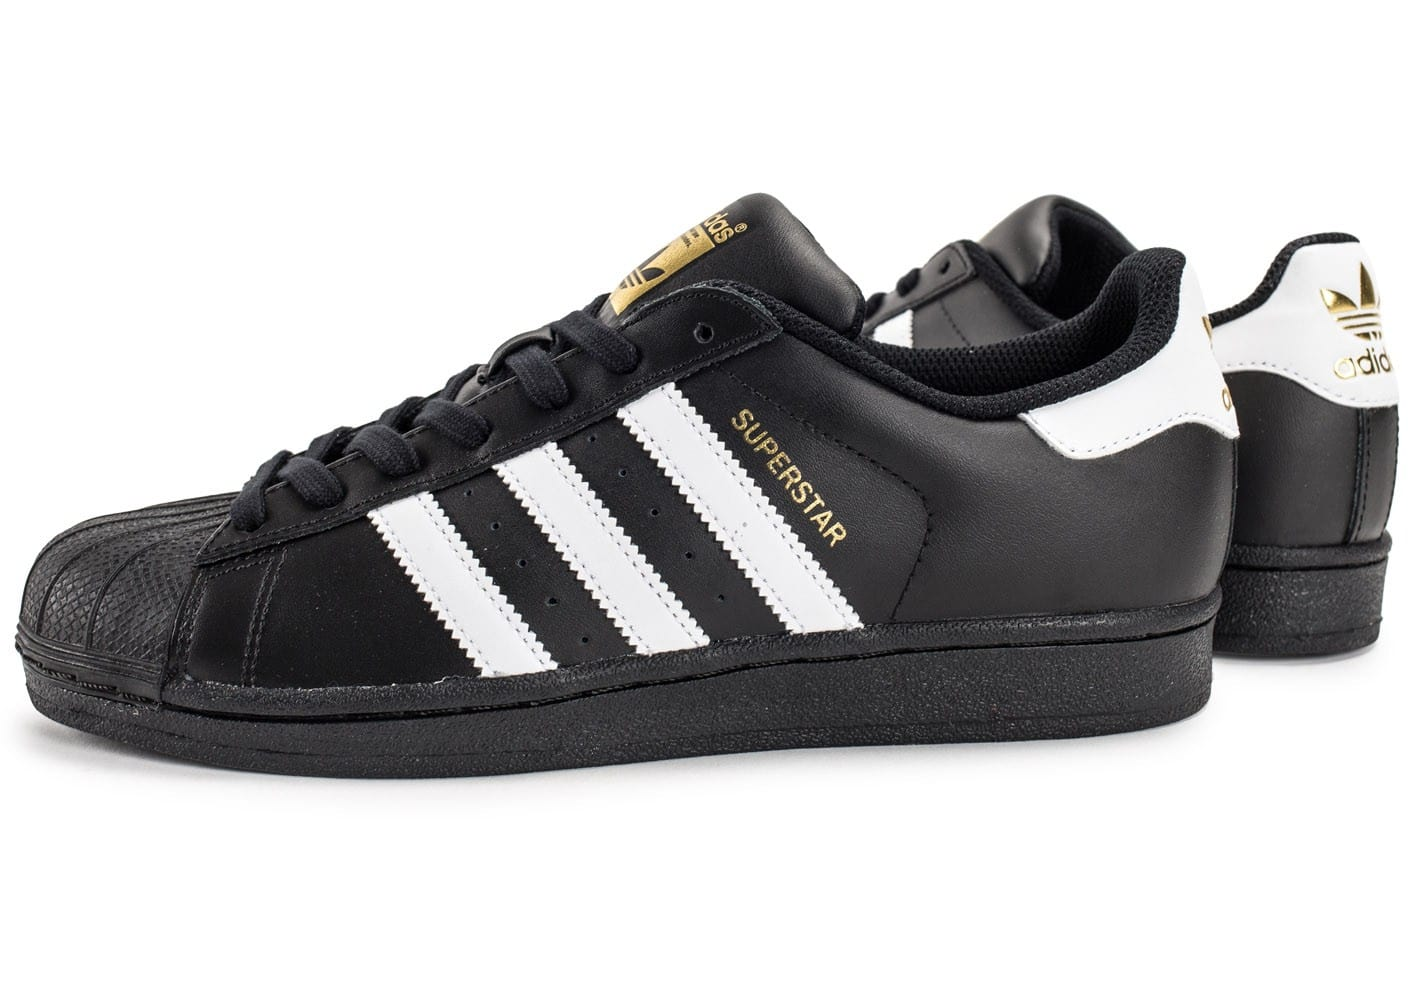 Authentique Superstar Adidas Réduction Baskets Homme Chausport zqwdxEFAUd